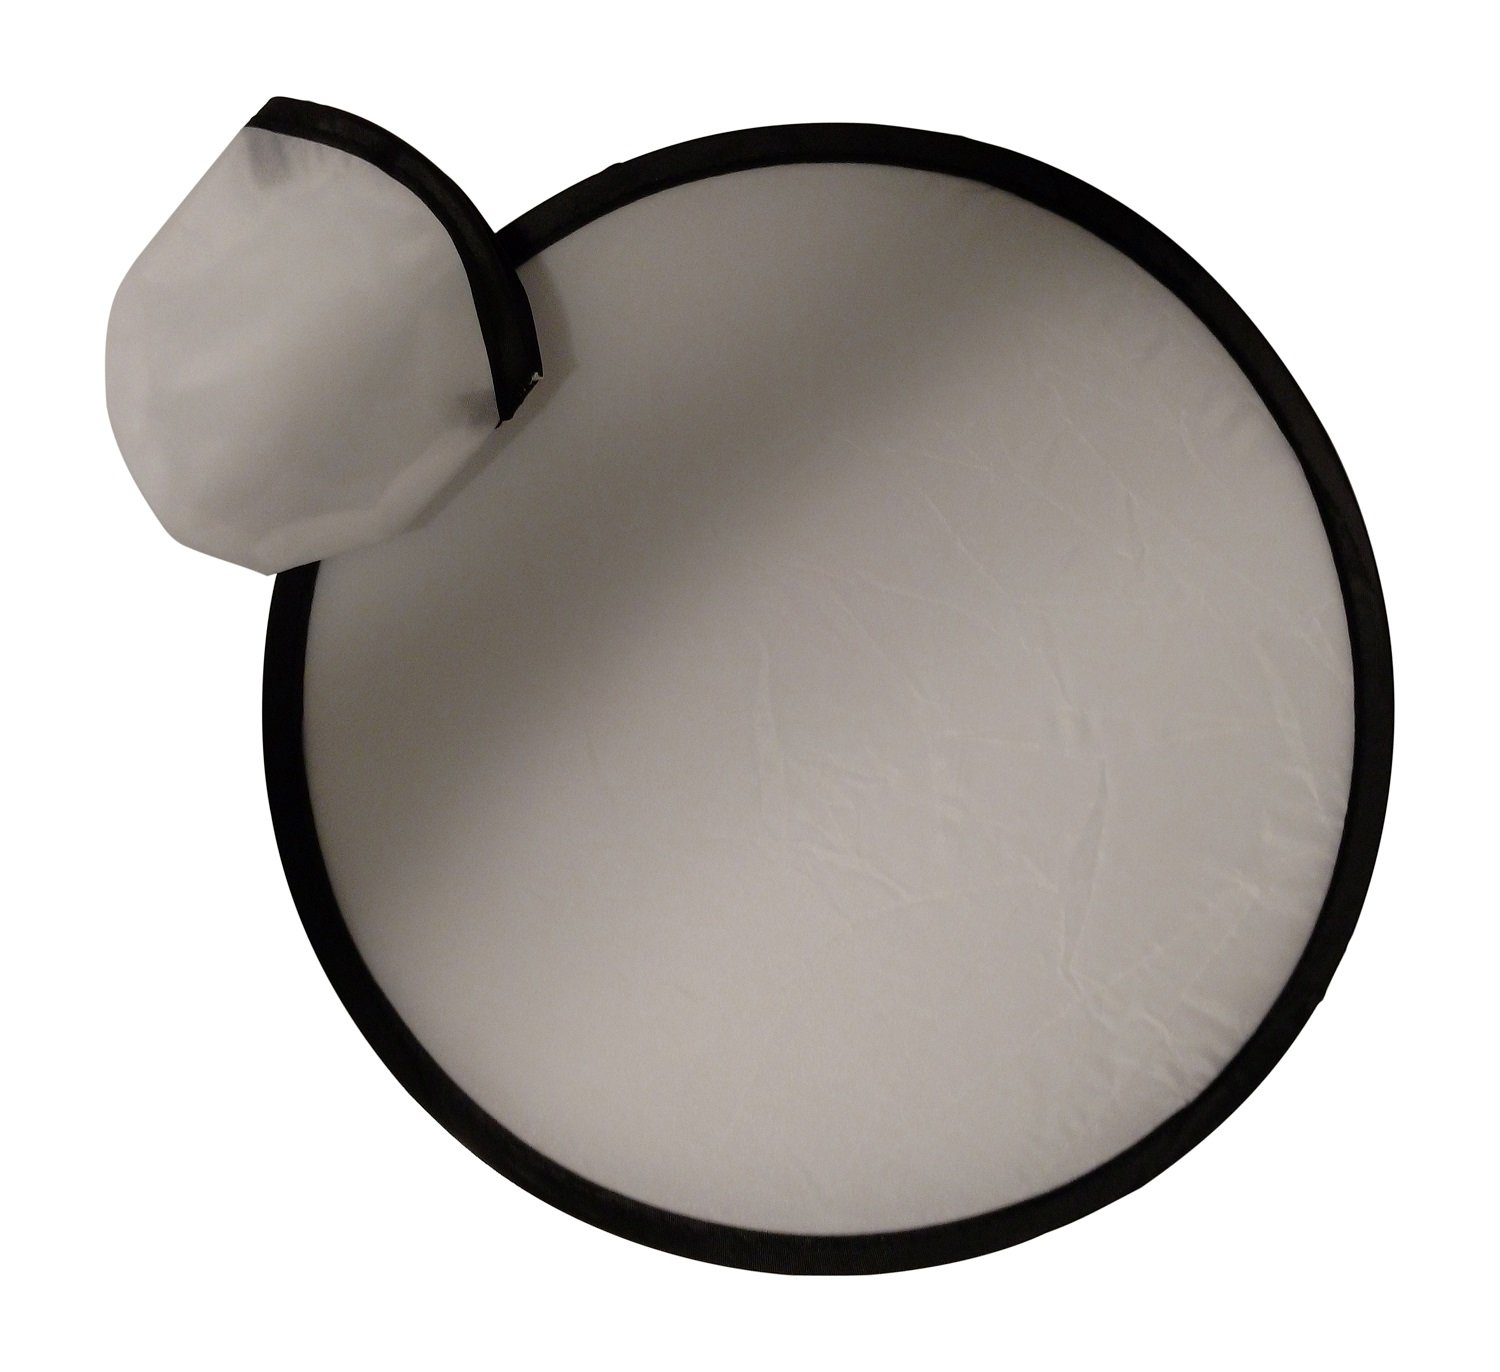 BZANY® White Toy Pocket Fan Flying Disc With Pouch (Pack Of 12) by BZANY